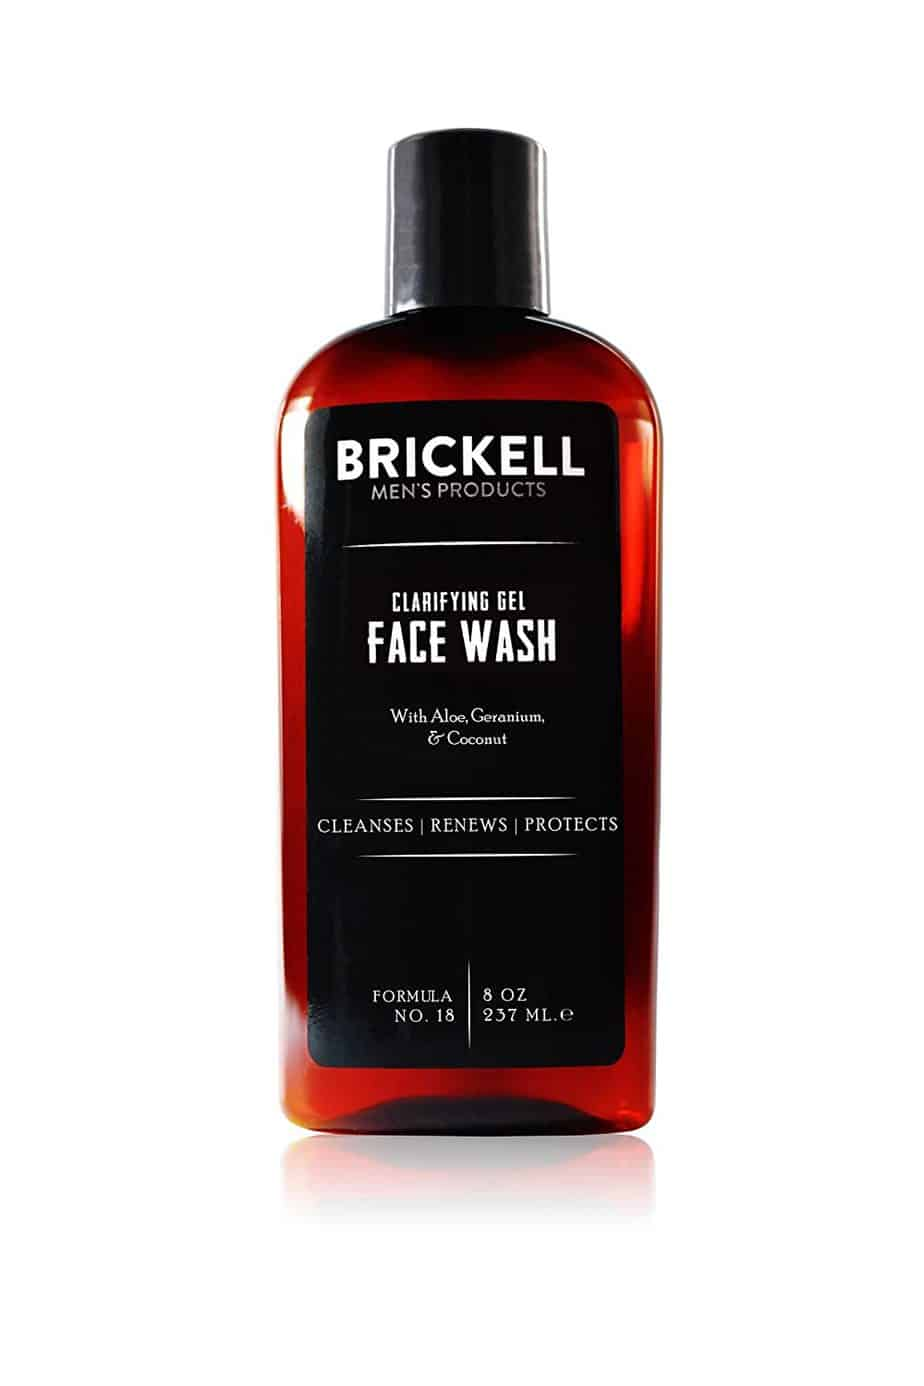 Brickell Men's Clarifying Gel Face Wash